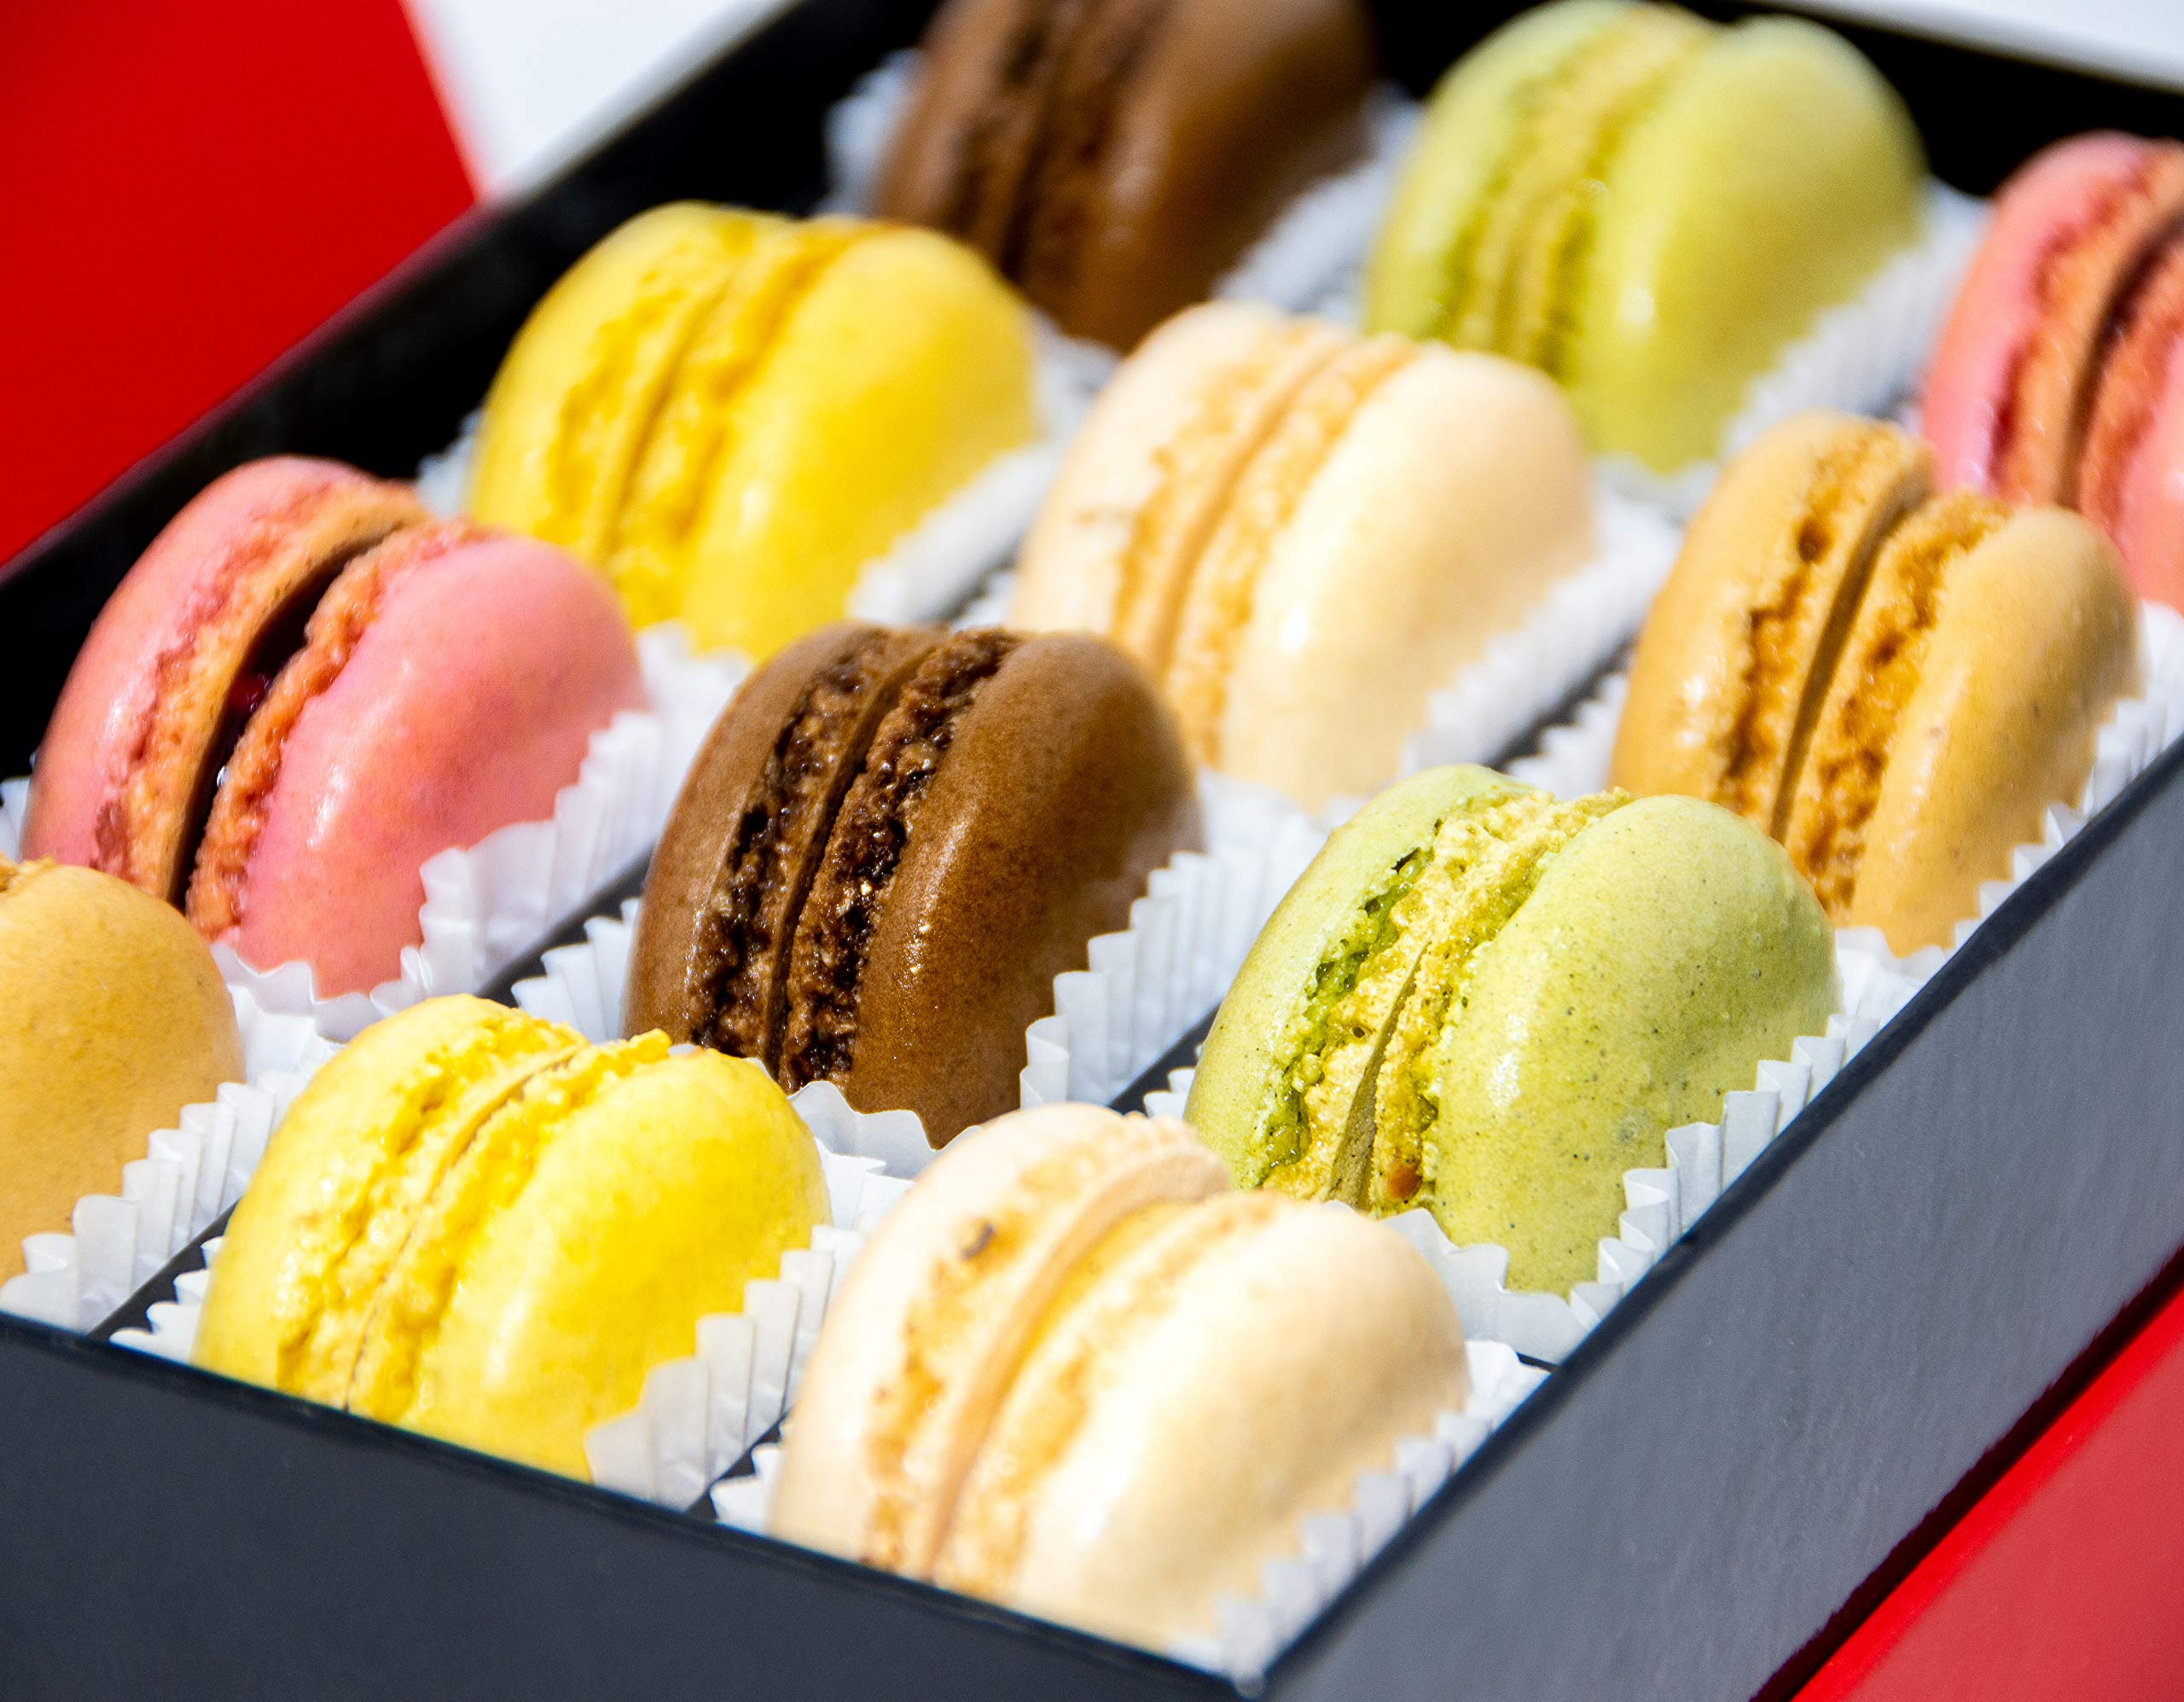 French Almond Macarons Gift Box - 2 pack x 12 pcs - Non GMO, Assorted Macaroons Cookies - Imported From France by MARKY'S (Image #2)